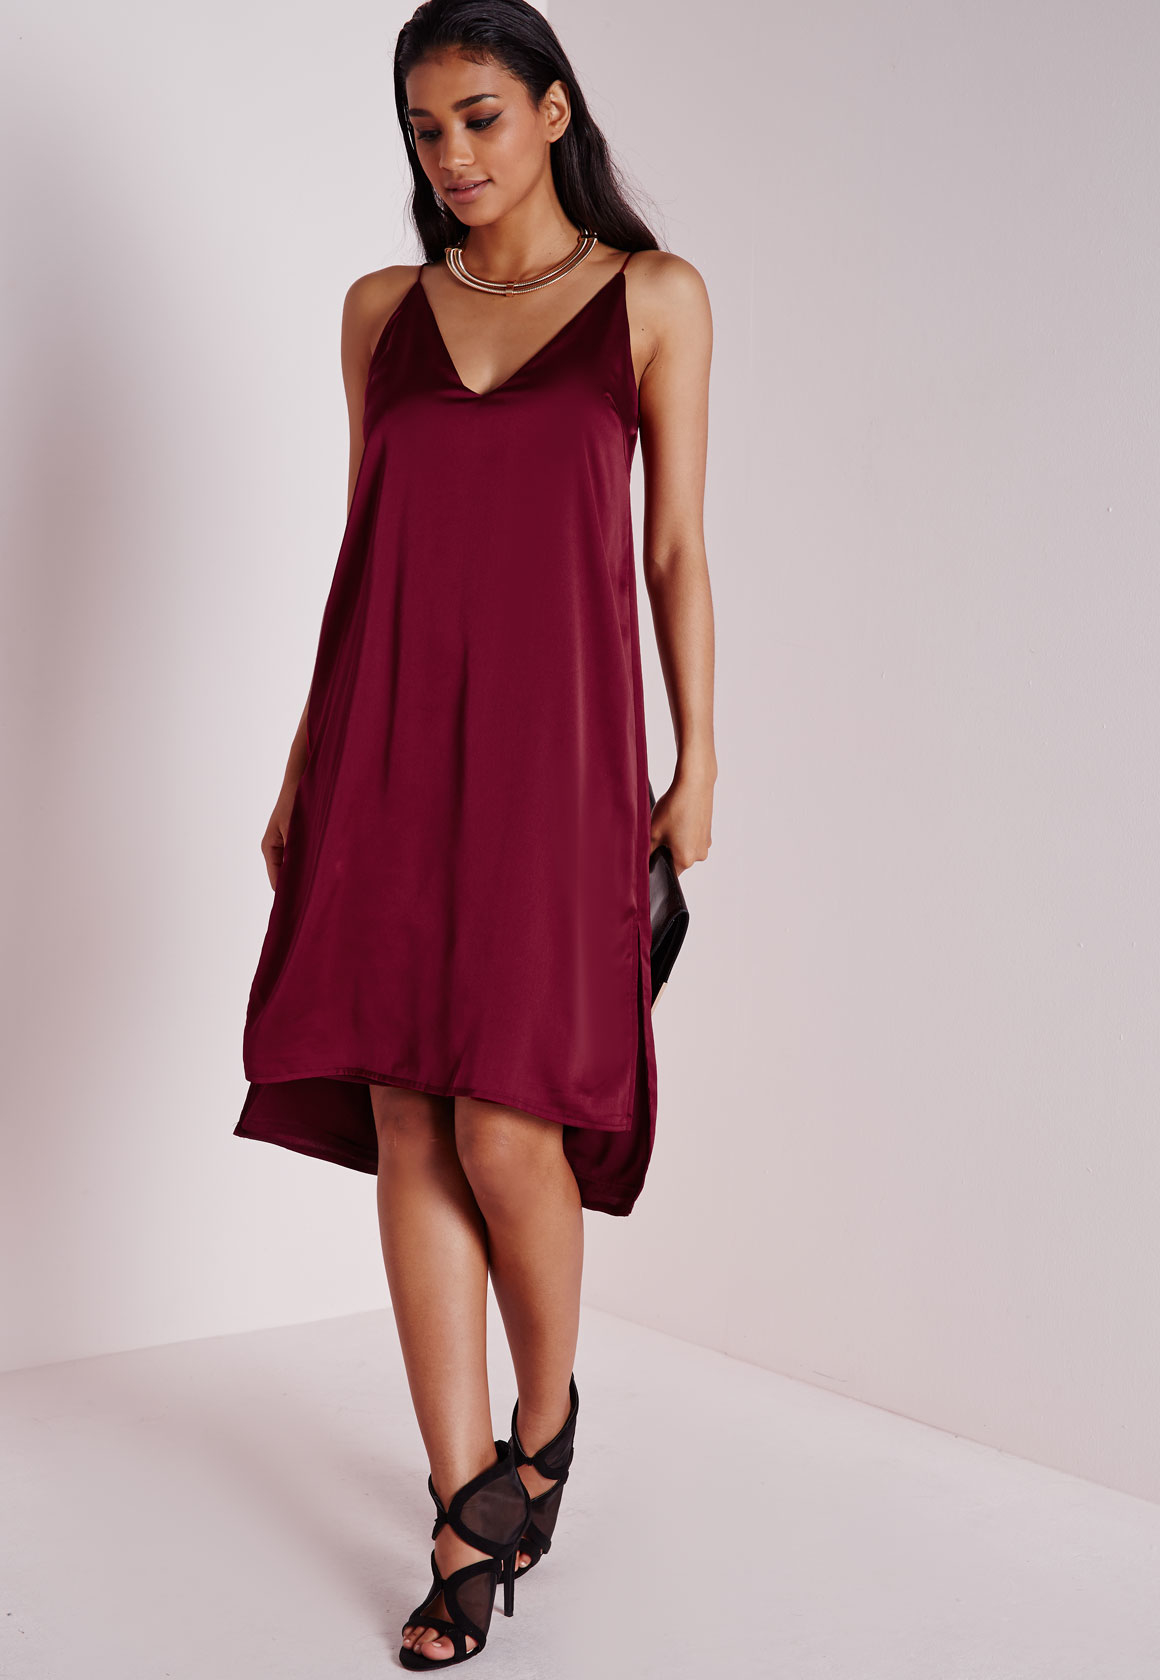 a6a38e3e0e14 Lyst - Missguided Silky Plunge Shift Dress Burgundy in Red